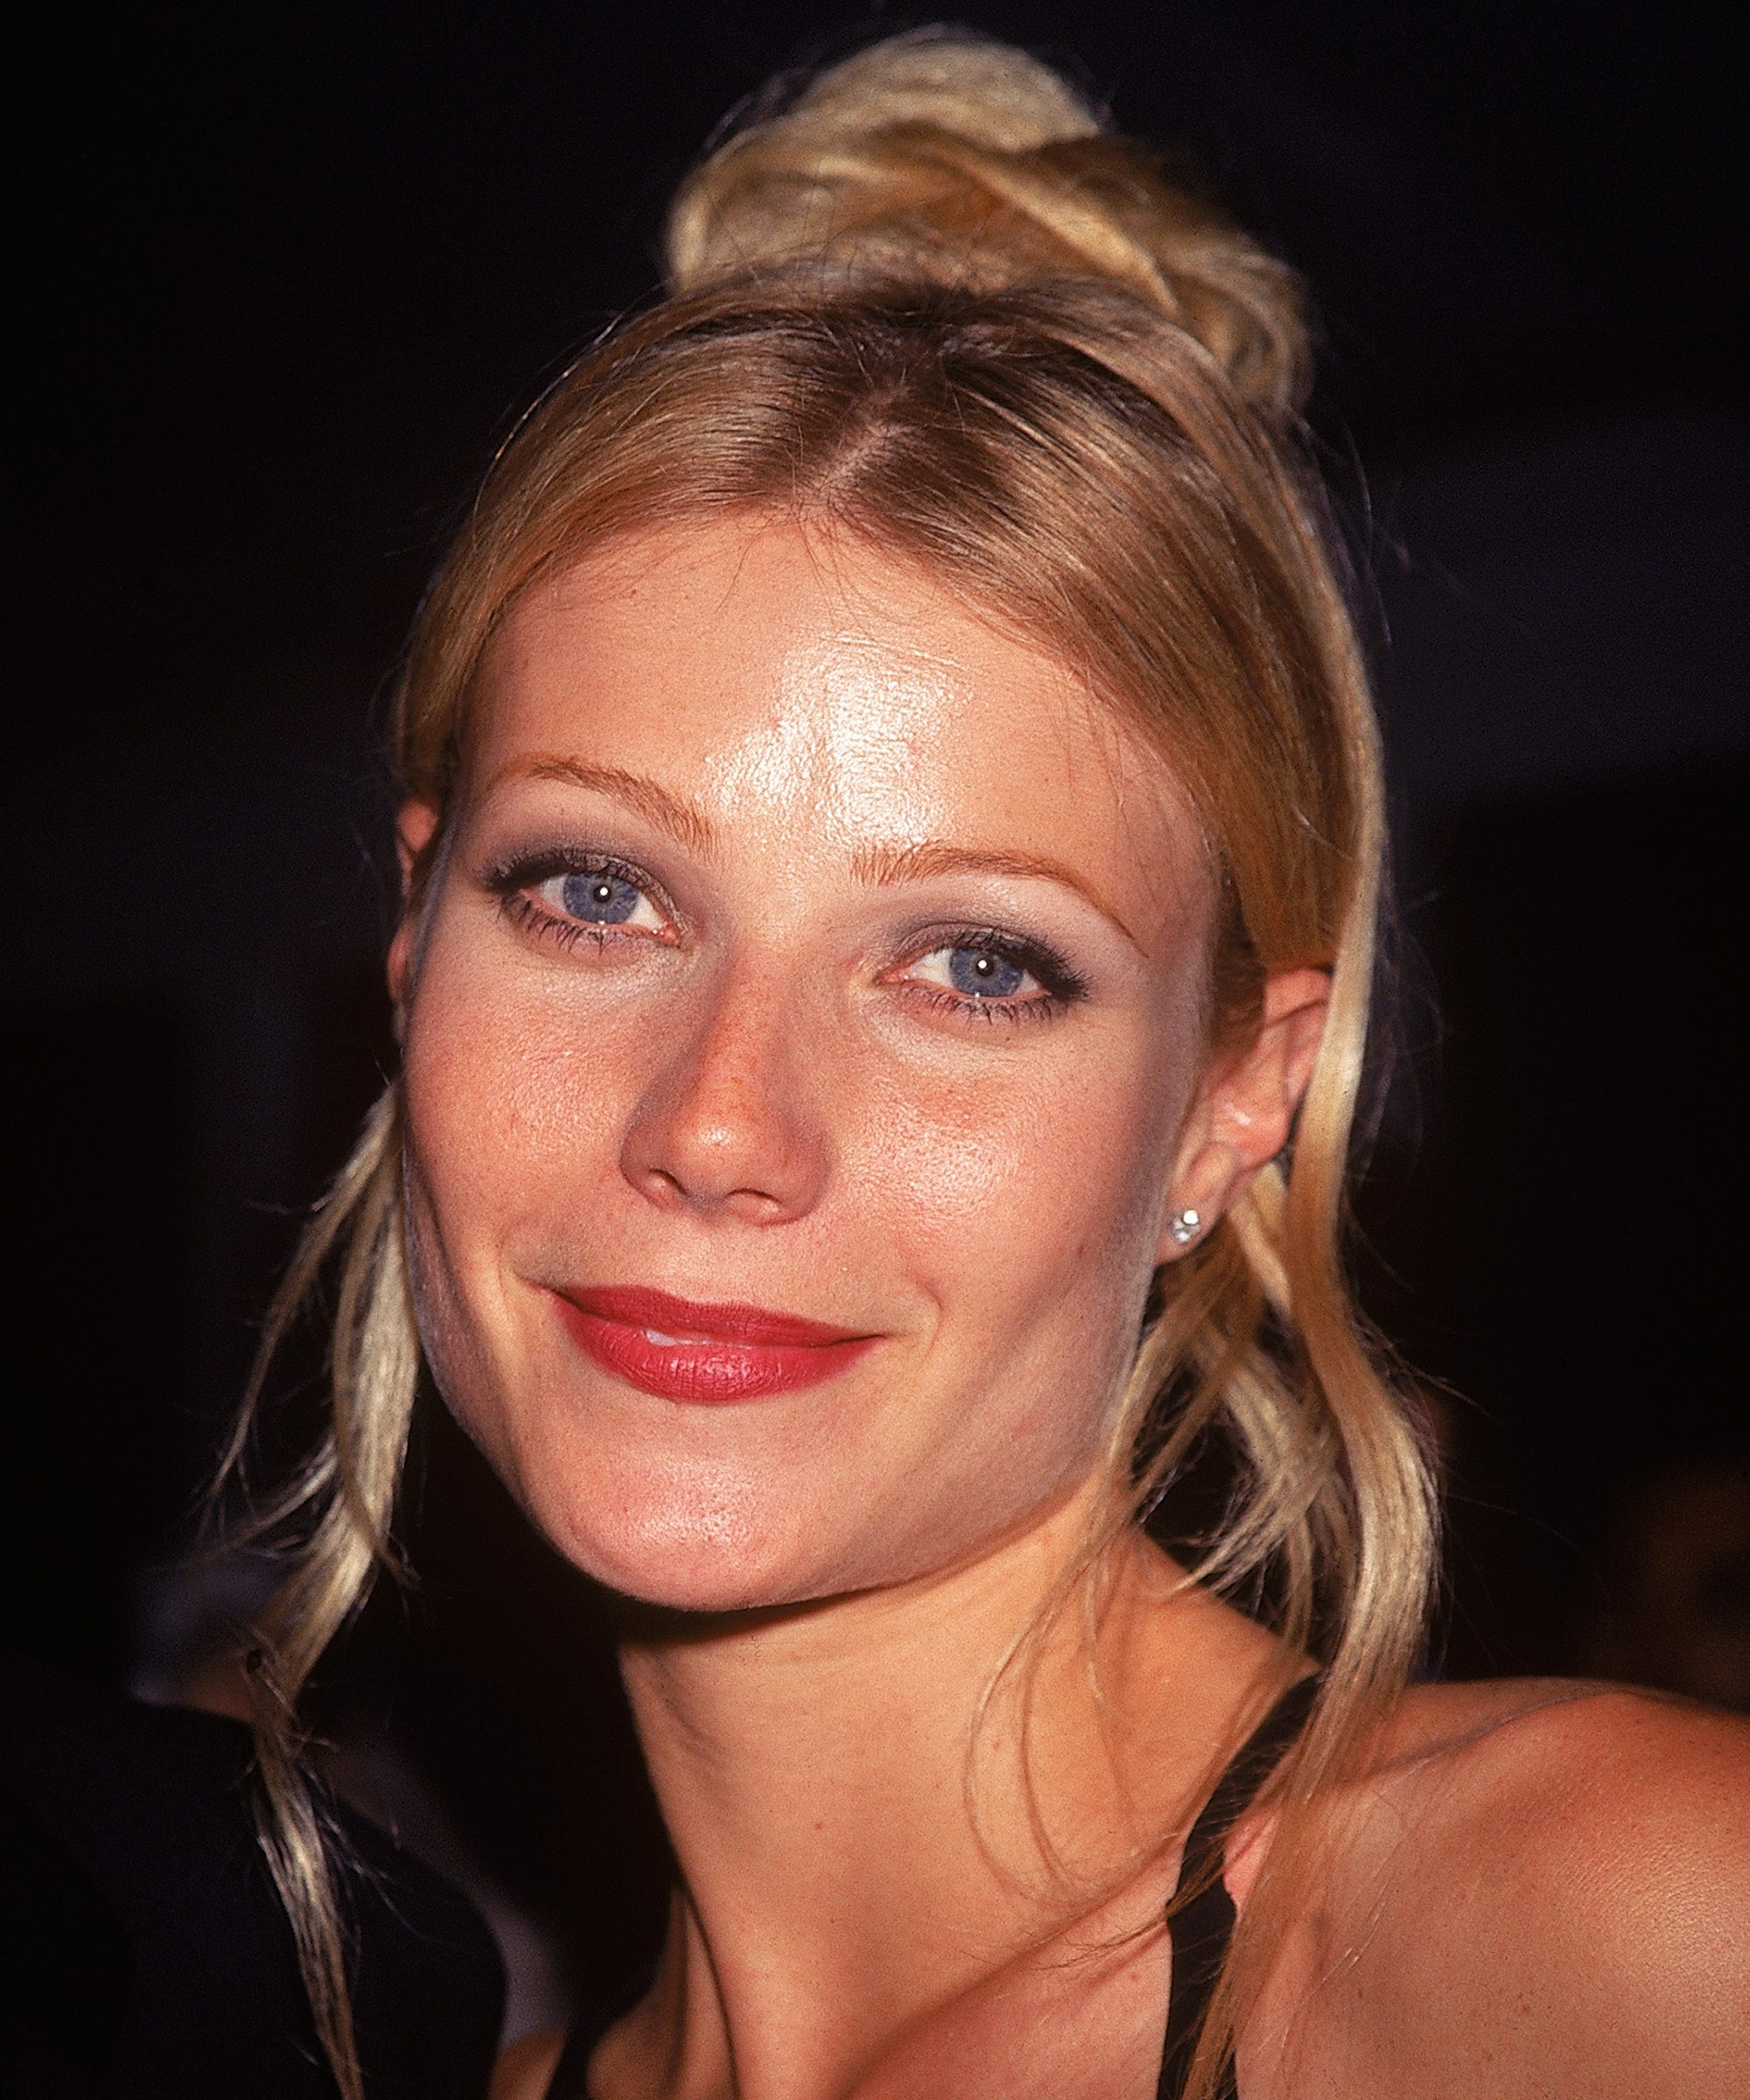 gwyneth paltrow - photo #5